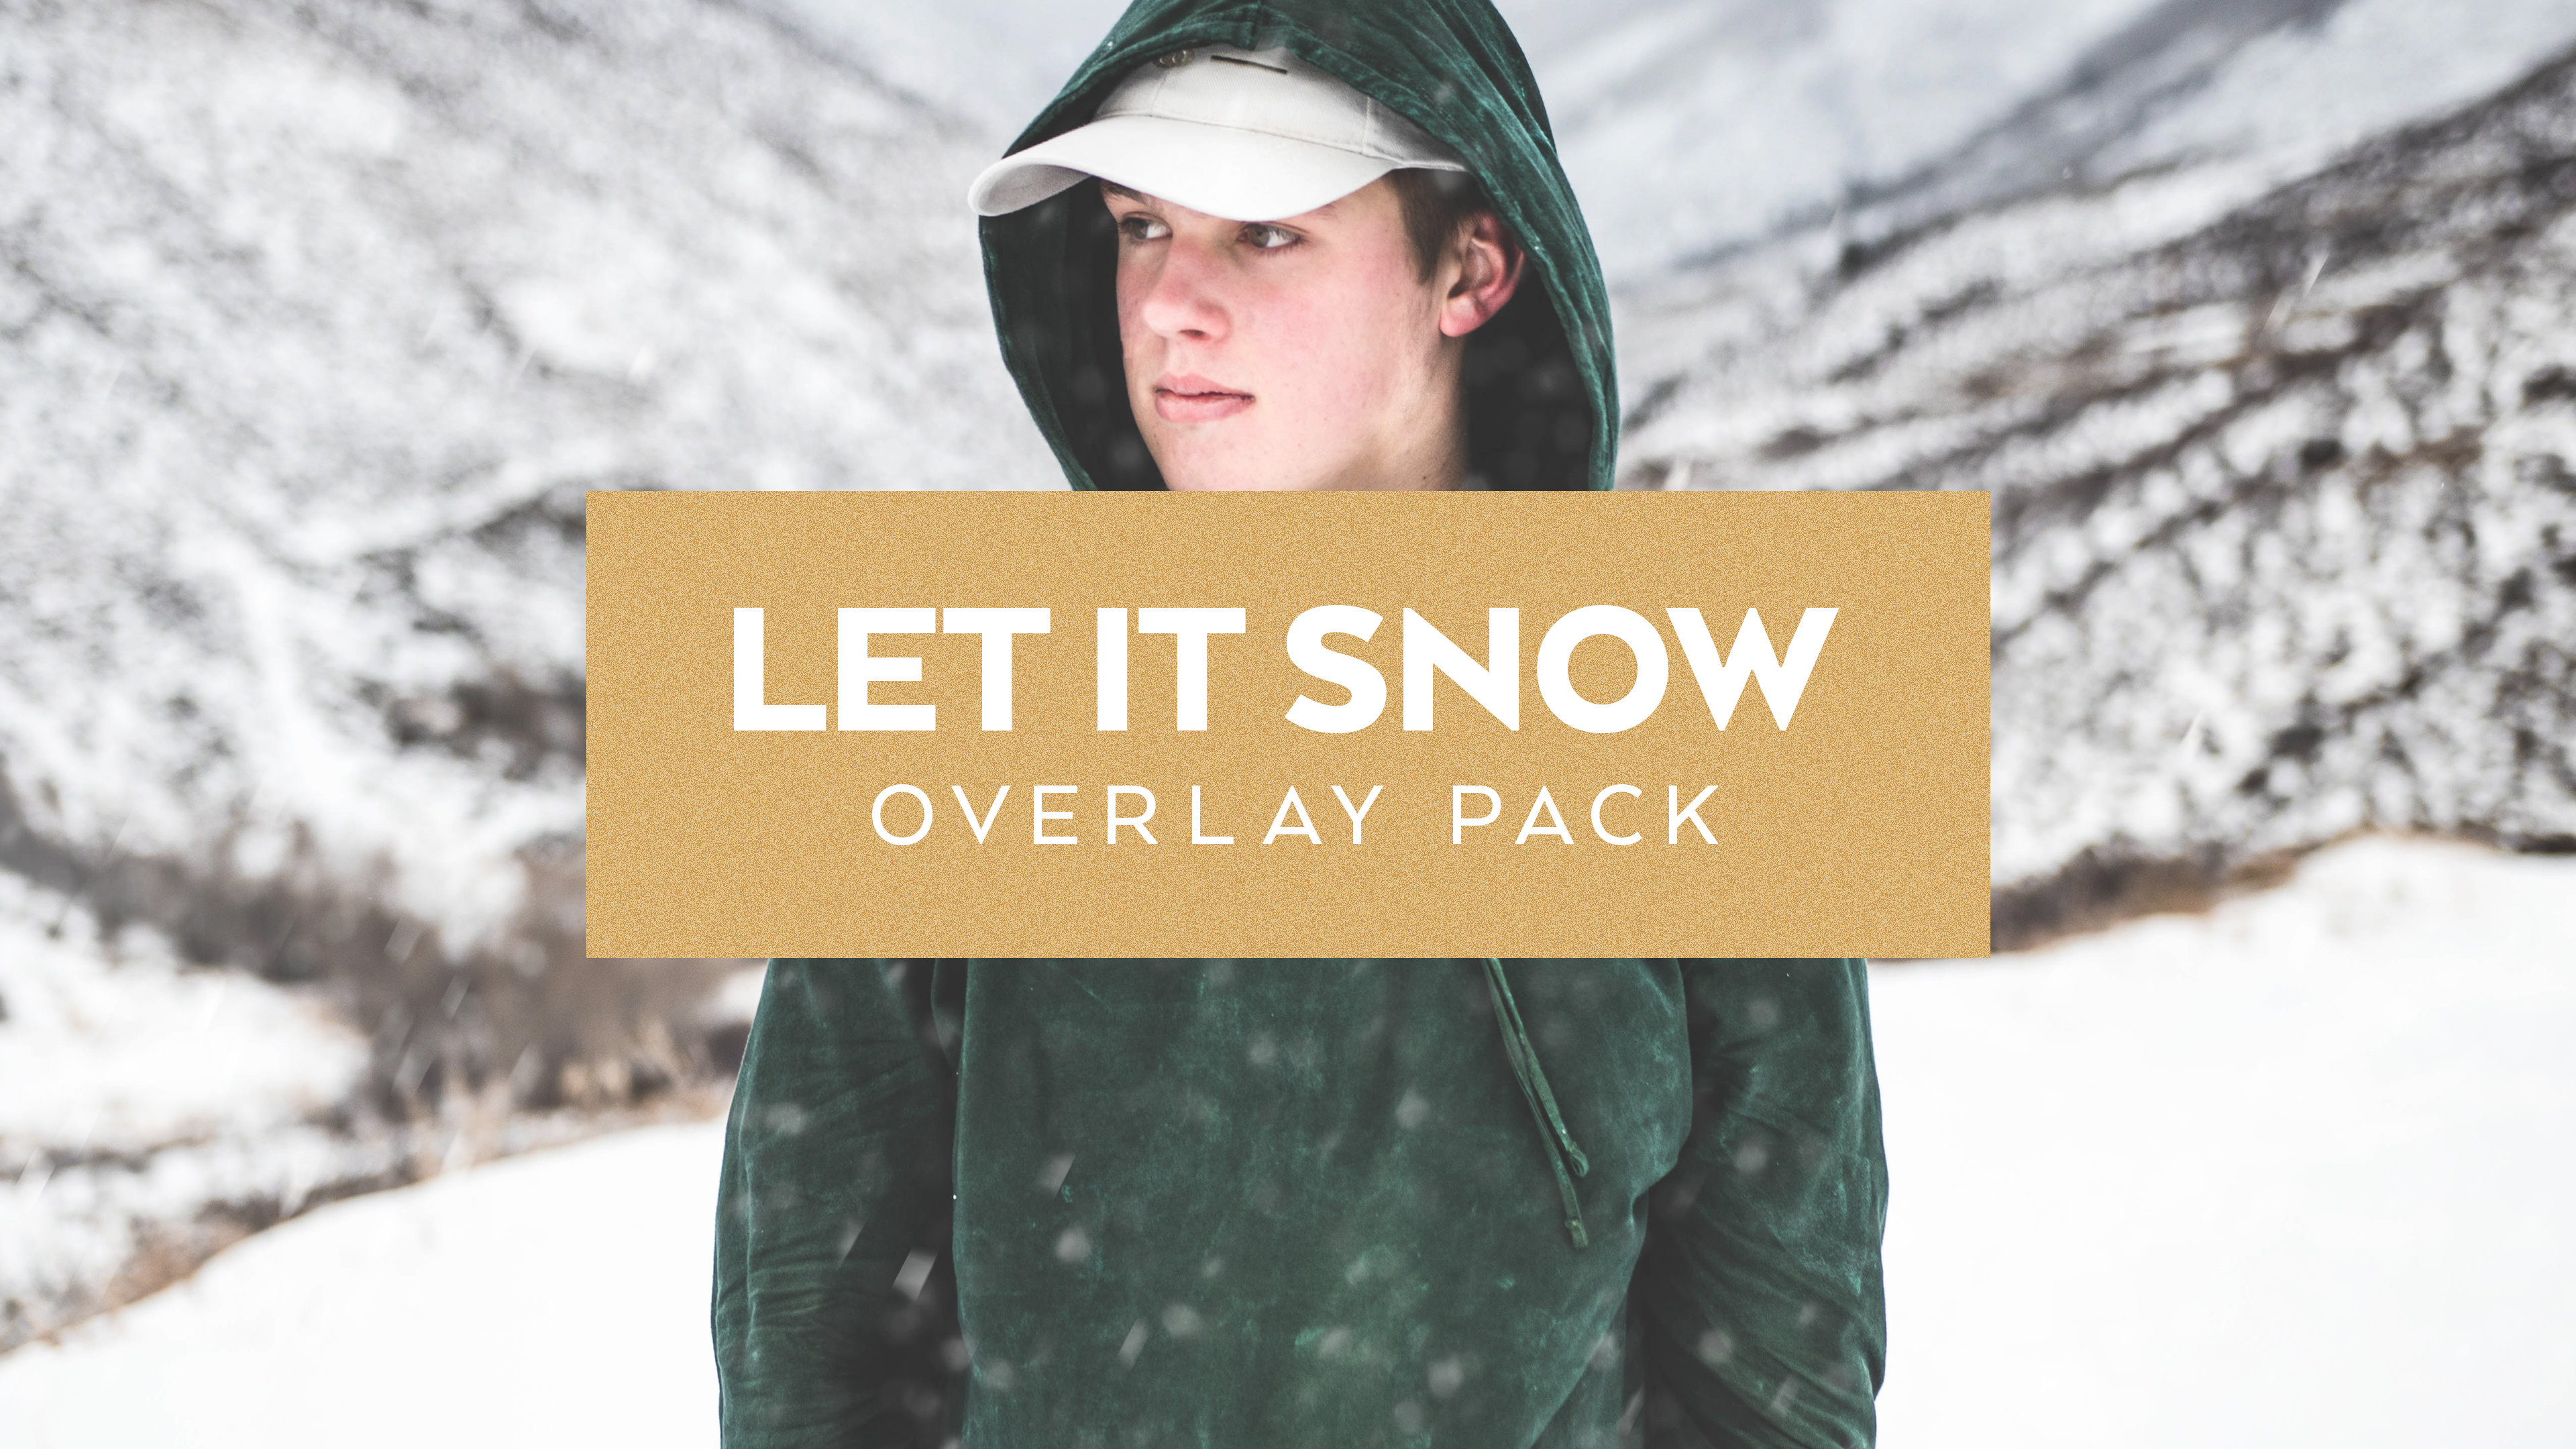 //nusupply.co/wp-content/uploads/2018/11/Let-It-Snow-Cover.jpg